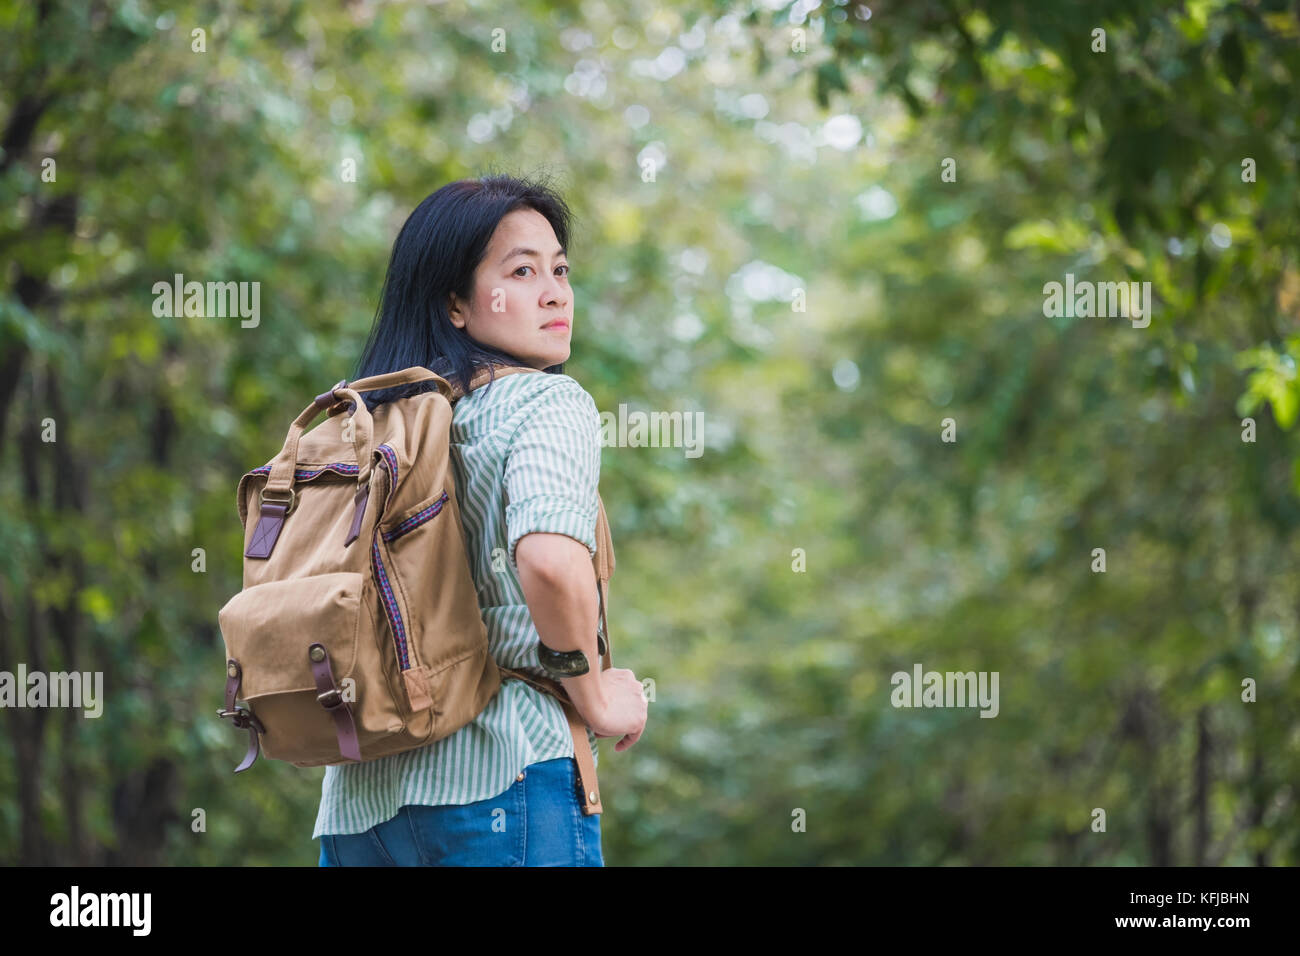 Happy young traveler woman backpacker travel in green natural forest ,greenery fresh air,Freedom wanderlust concept,Alone Stock Photo